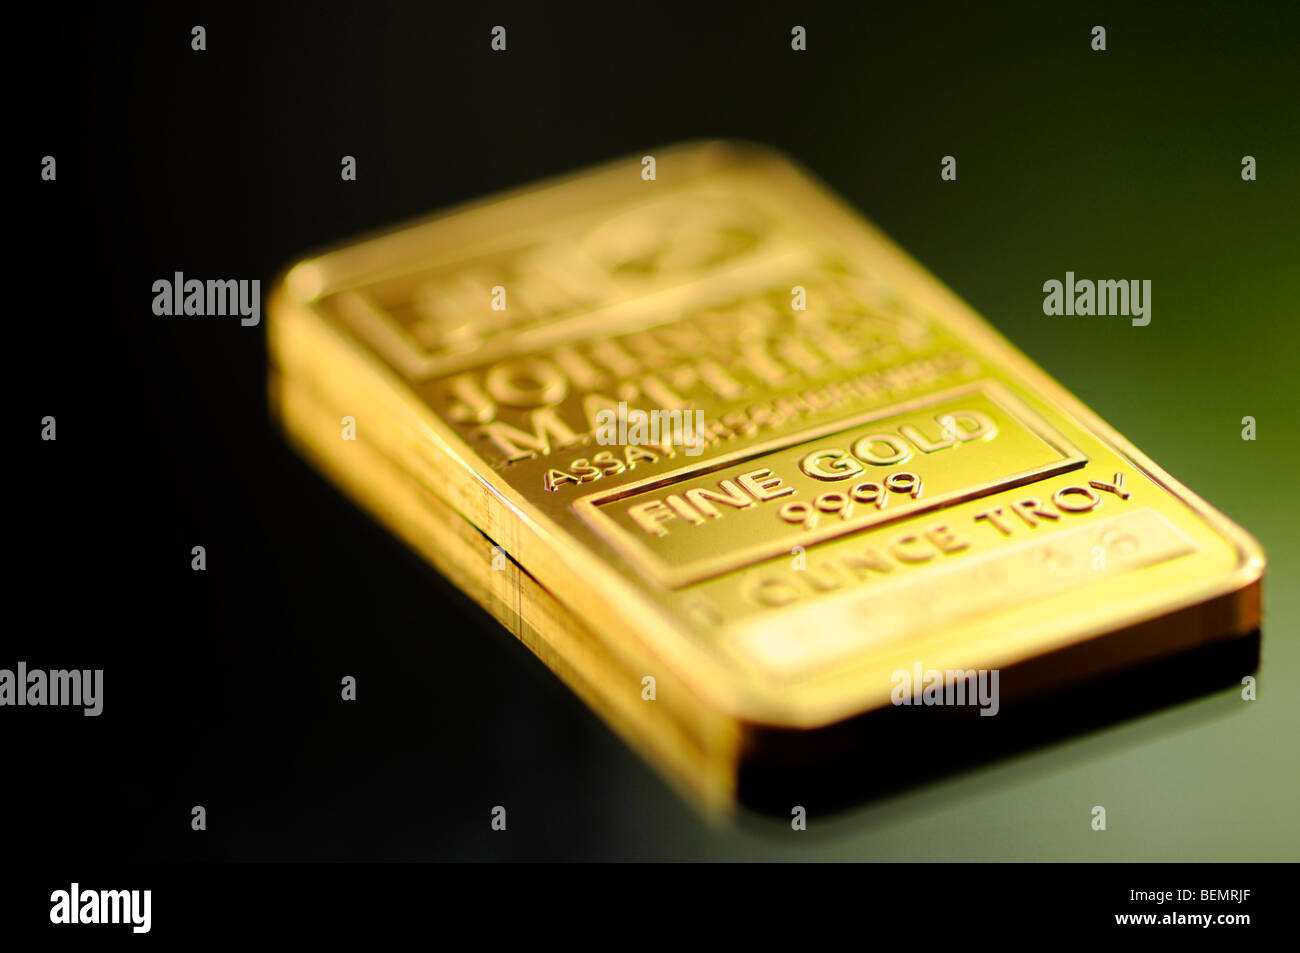 Gold Bar Ingot 1 Troy Ounce 999 Purity Stock Photo